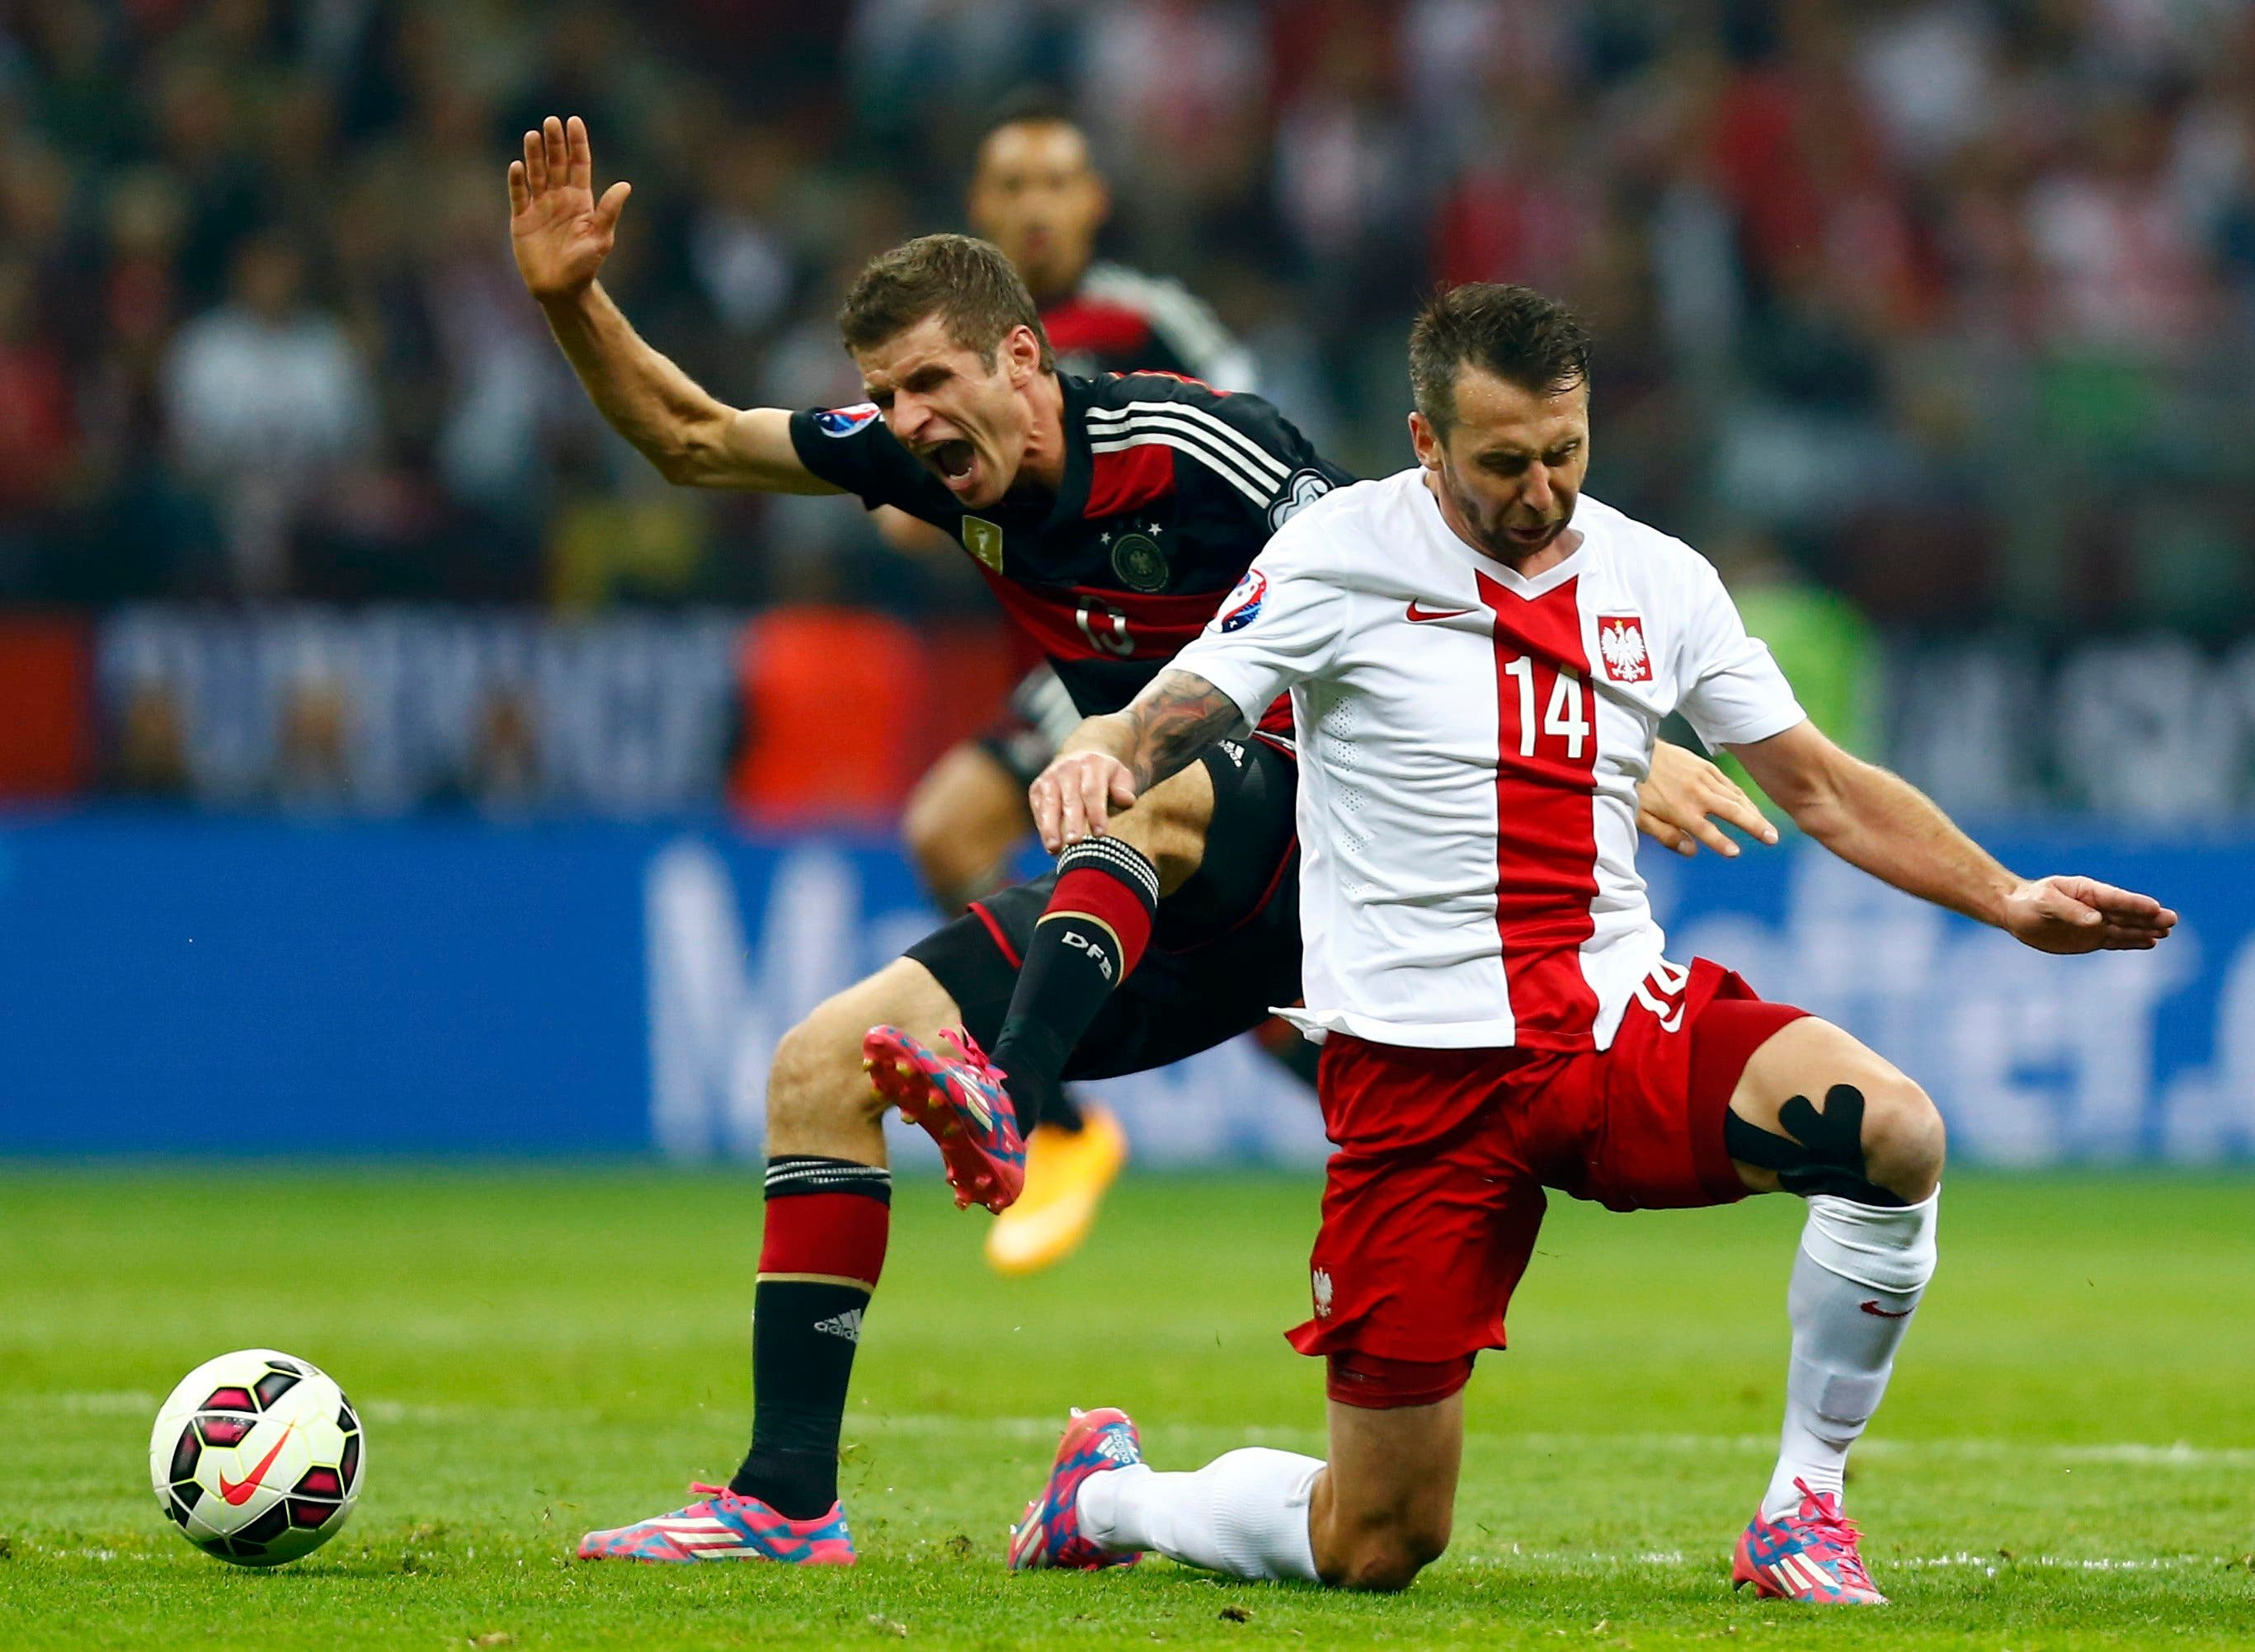 Germany's Thomas Mueller (L) challenges Poland's Jakub Wawrzyniak during their Euro 2016 group D qualifying soccer match at the National stadium in Warsaw October 11, 2014.  (Reuters)